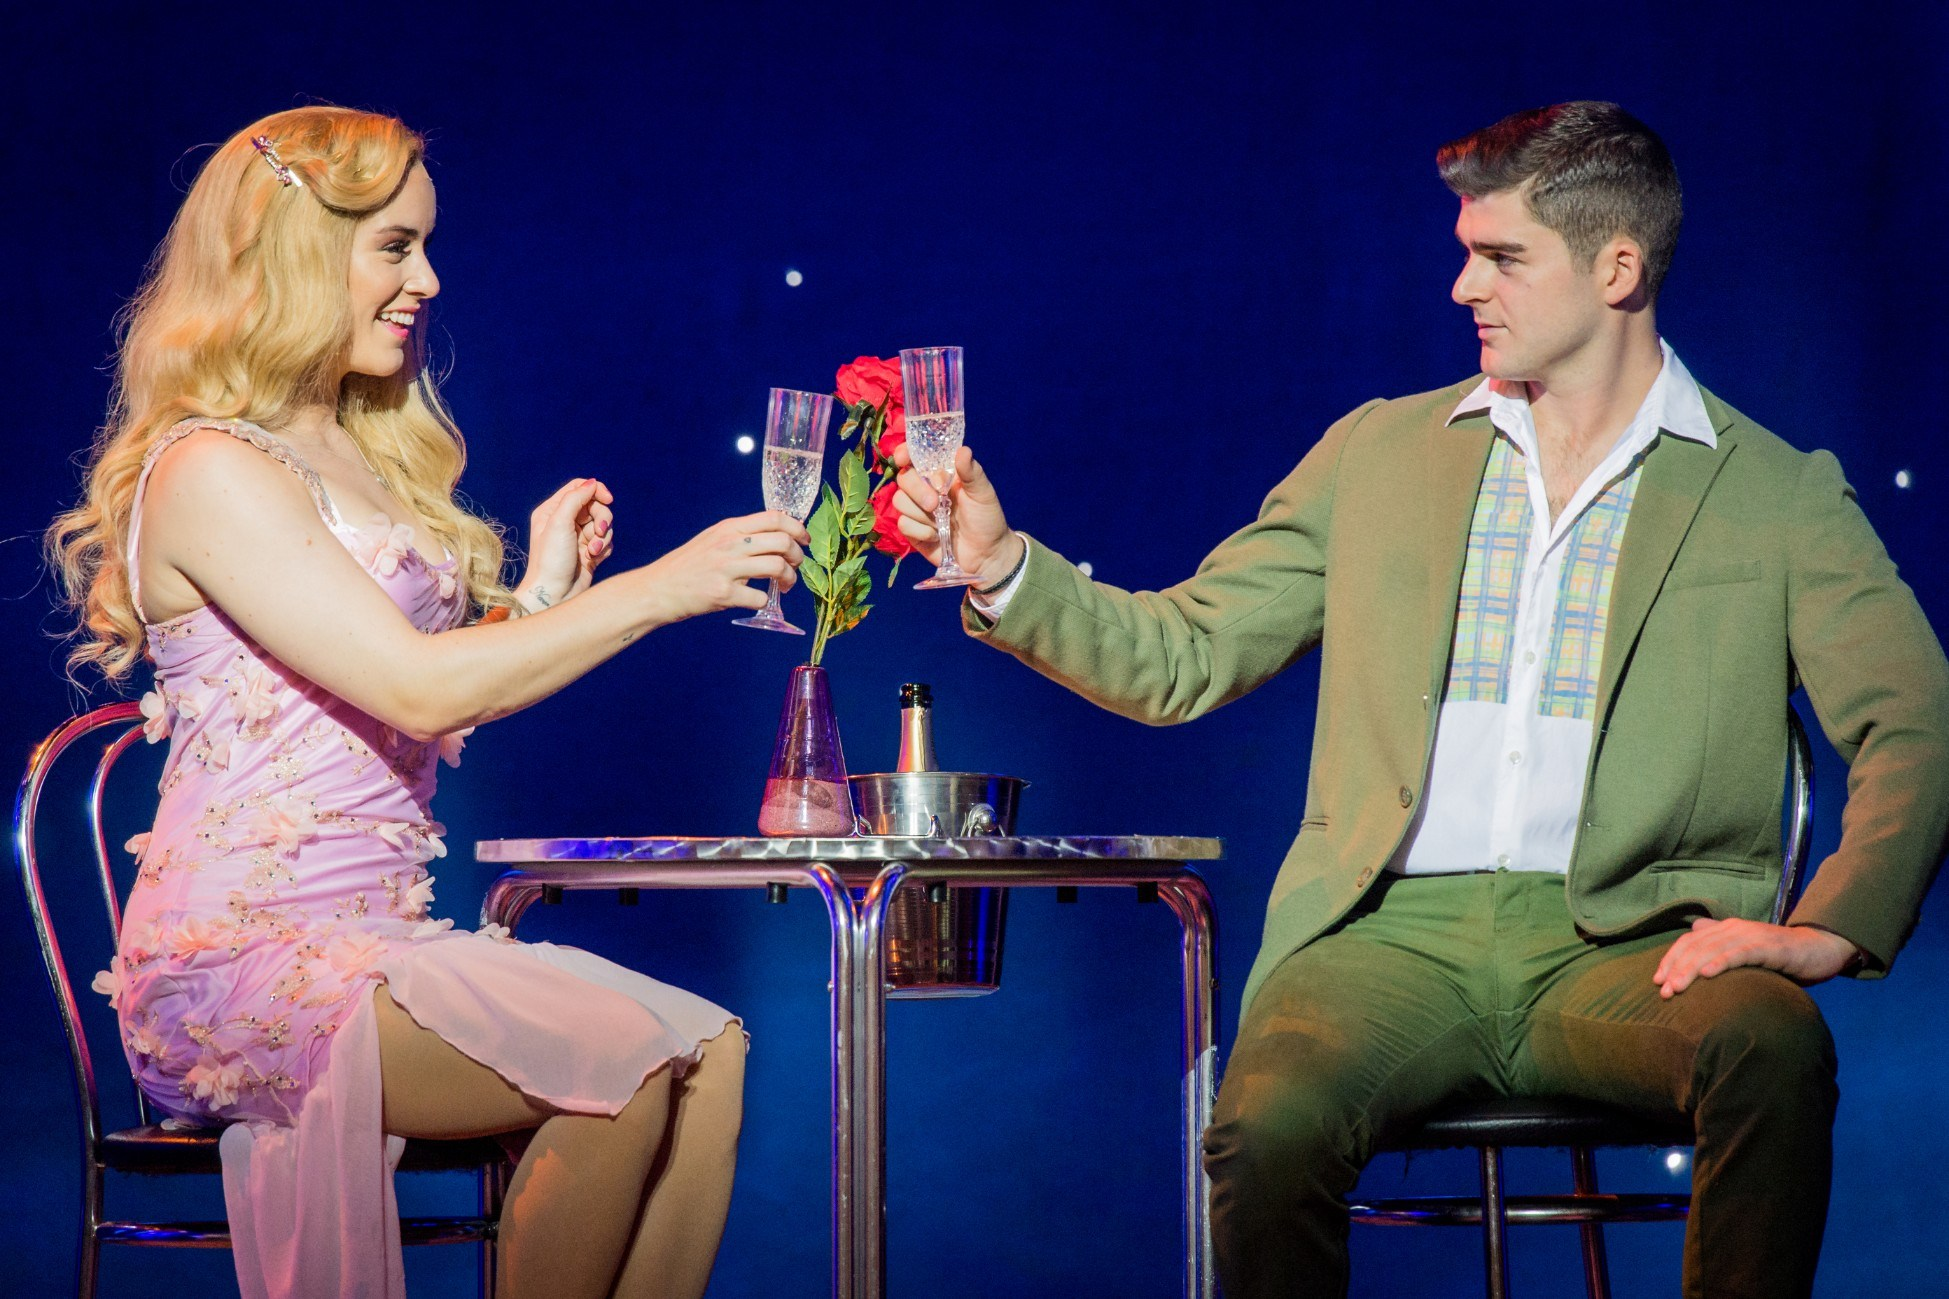 Legally-Blonde-SERIOUS-Lucie-Jones-and-Liam-Doyle-Photo-Robert-Workman.jpg